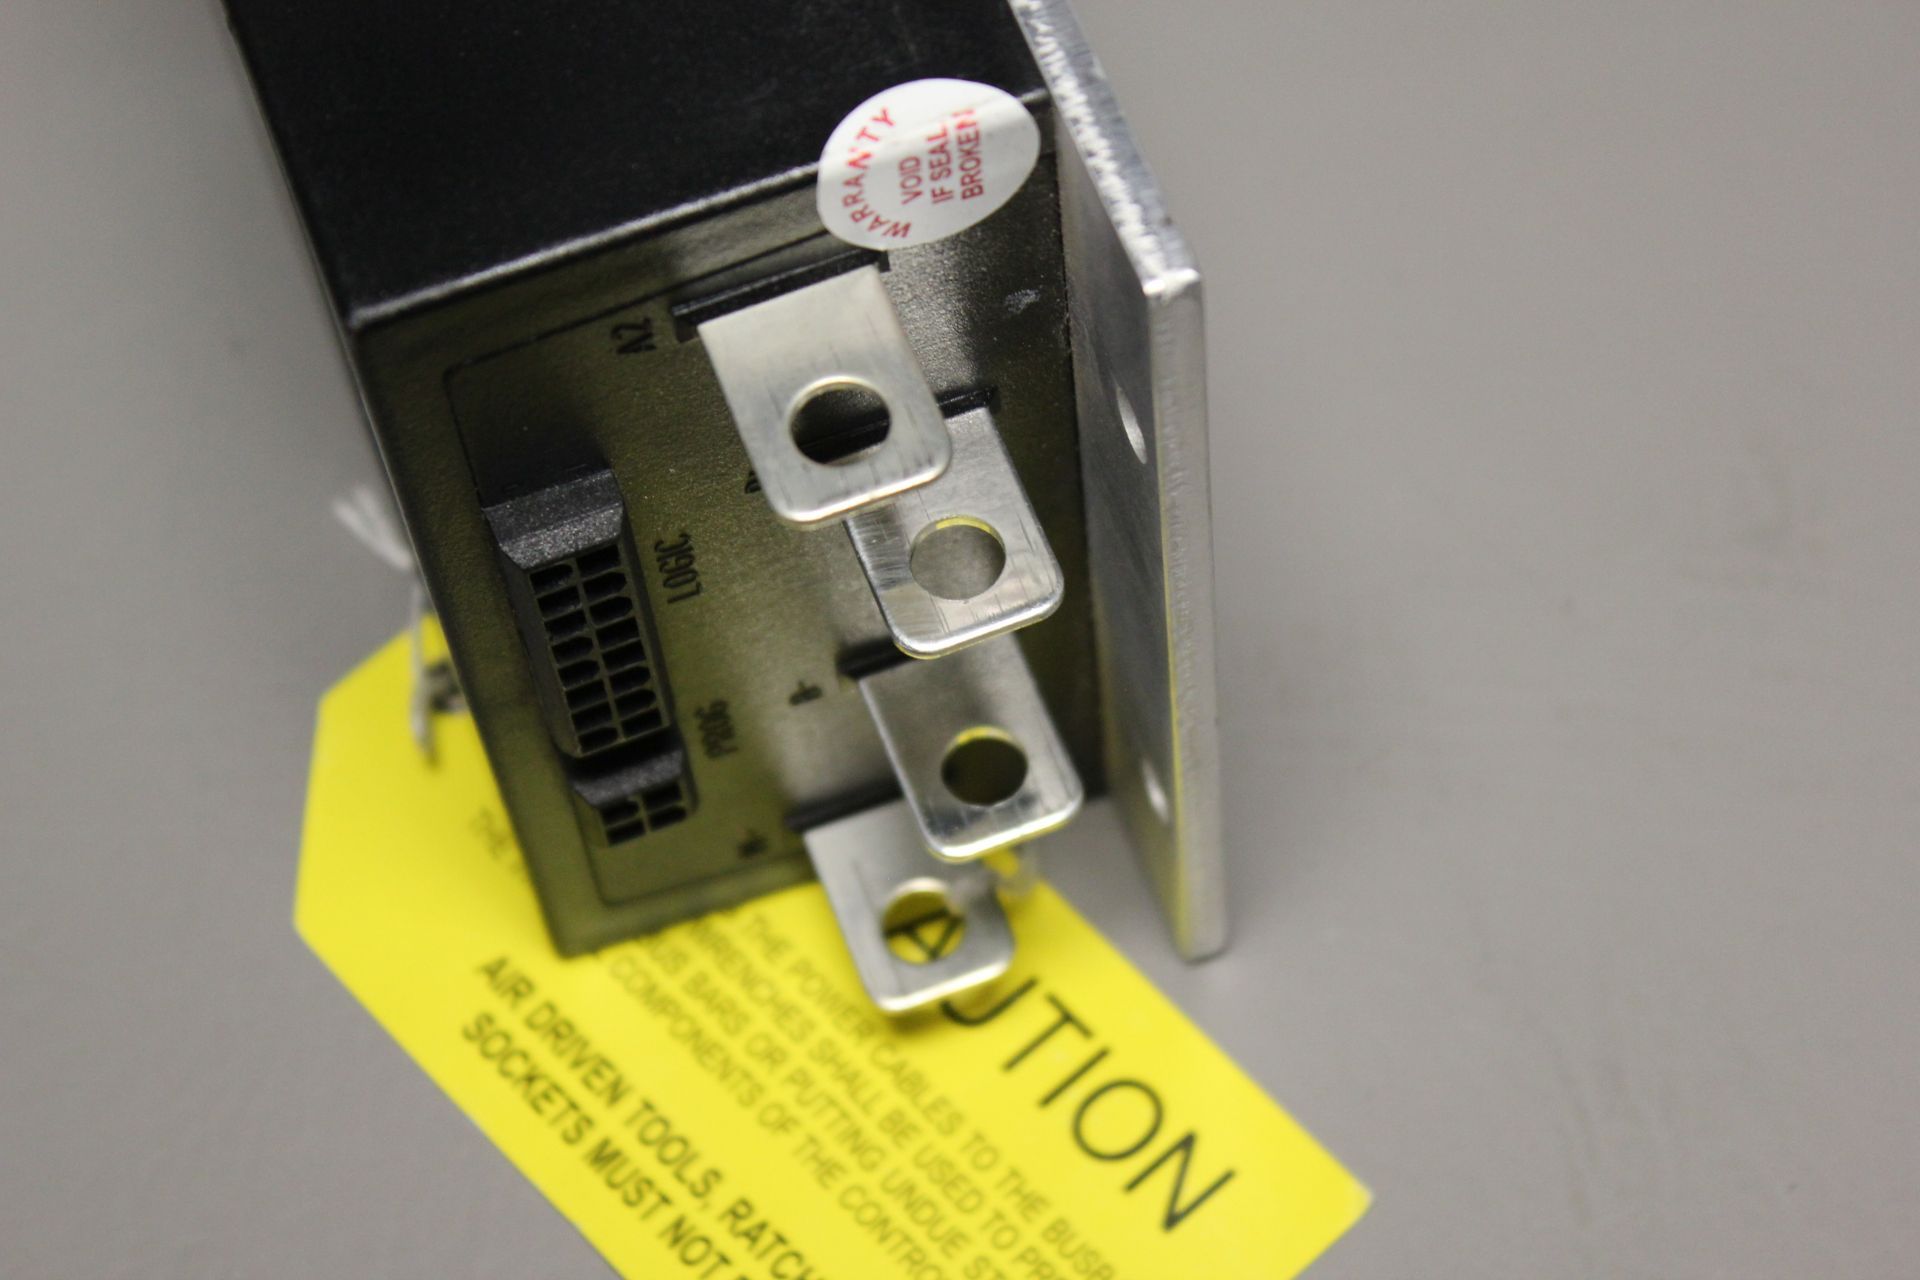 UNUSED CURTIS DC MOTOR CONTROLLER - Image 4 of 4